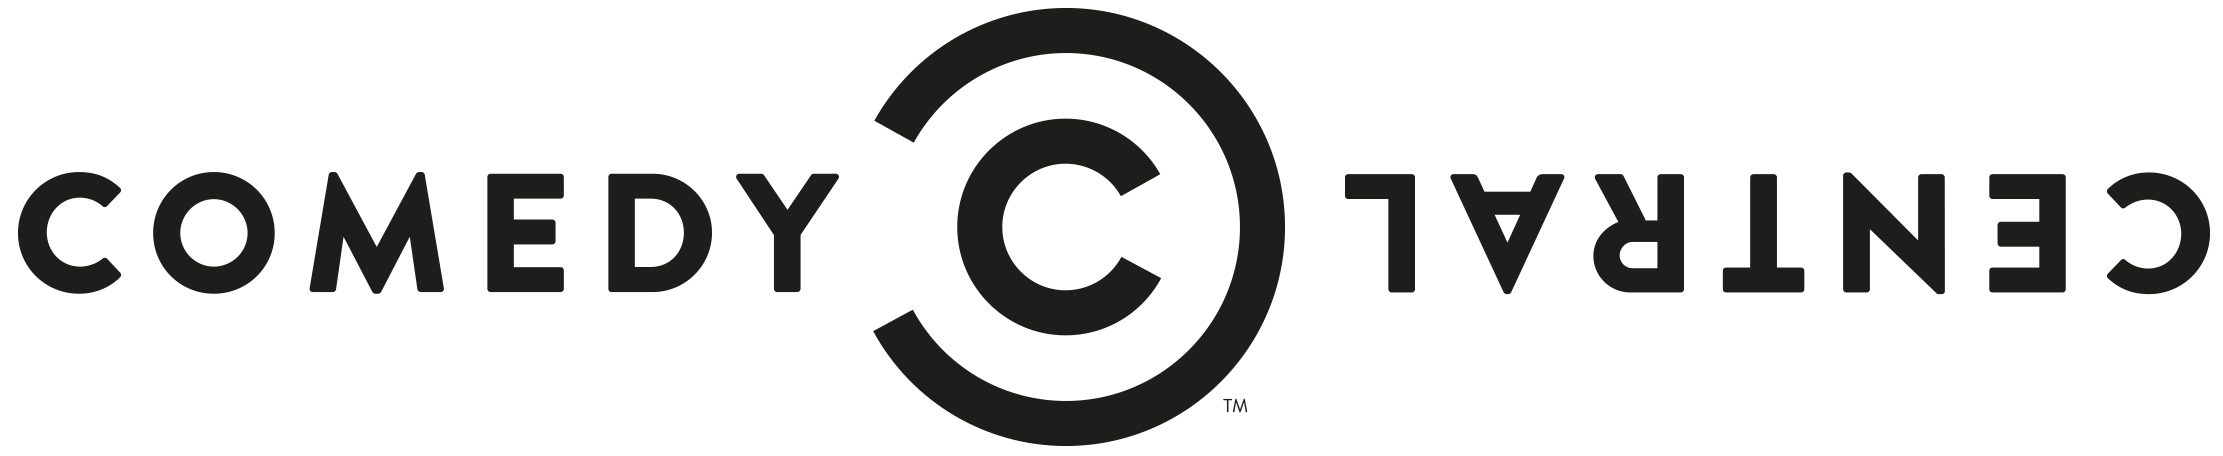 comedy_central_logo-crop.png